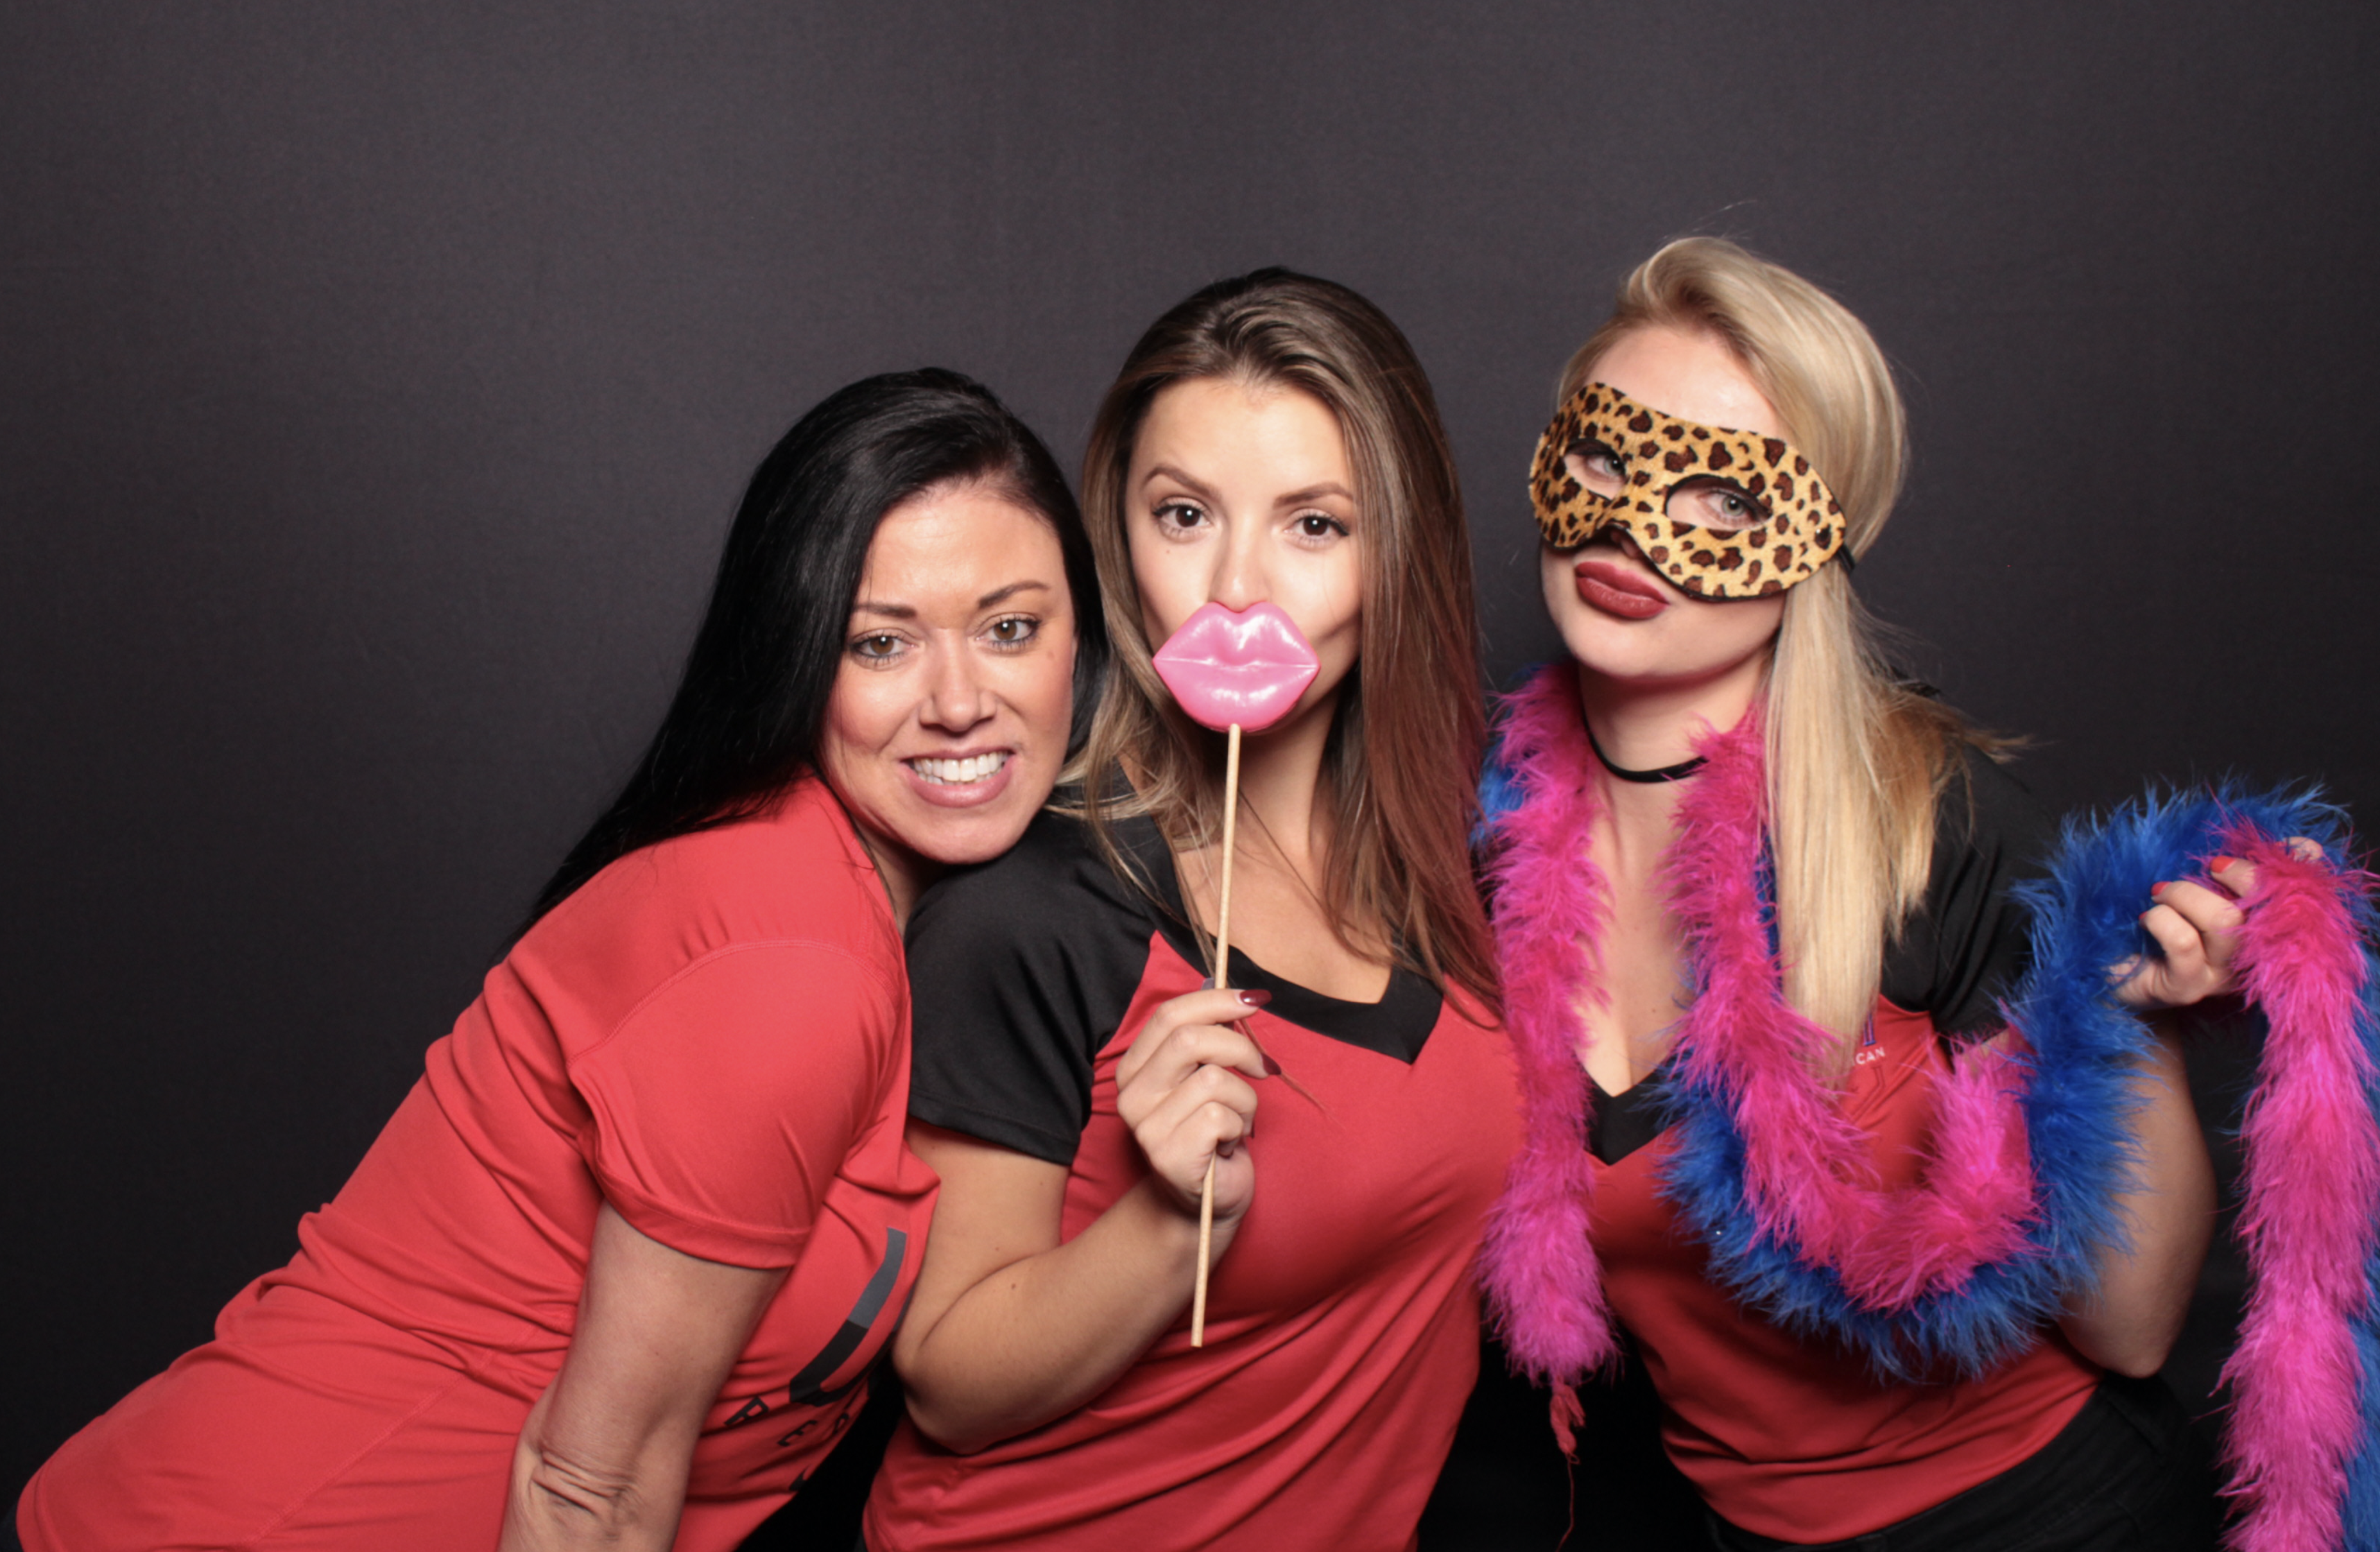 Photo Booth Rentals in Las Vegas, Smash Booth